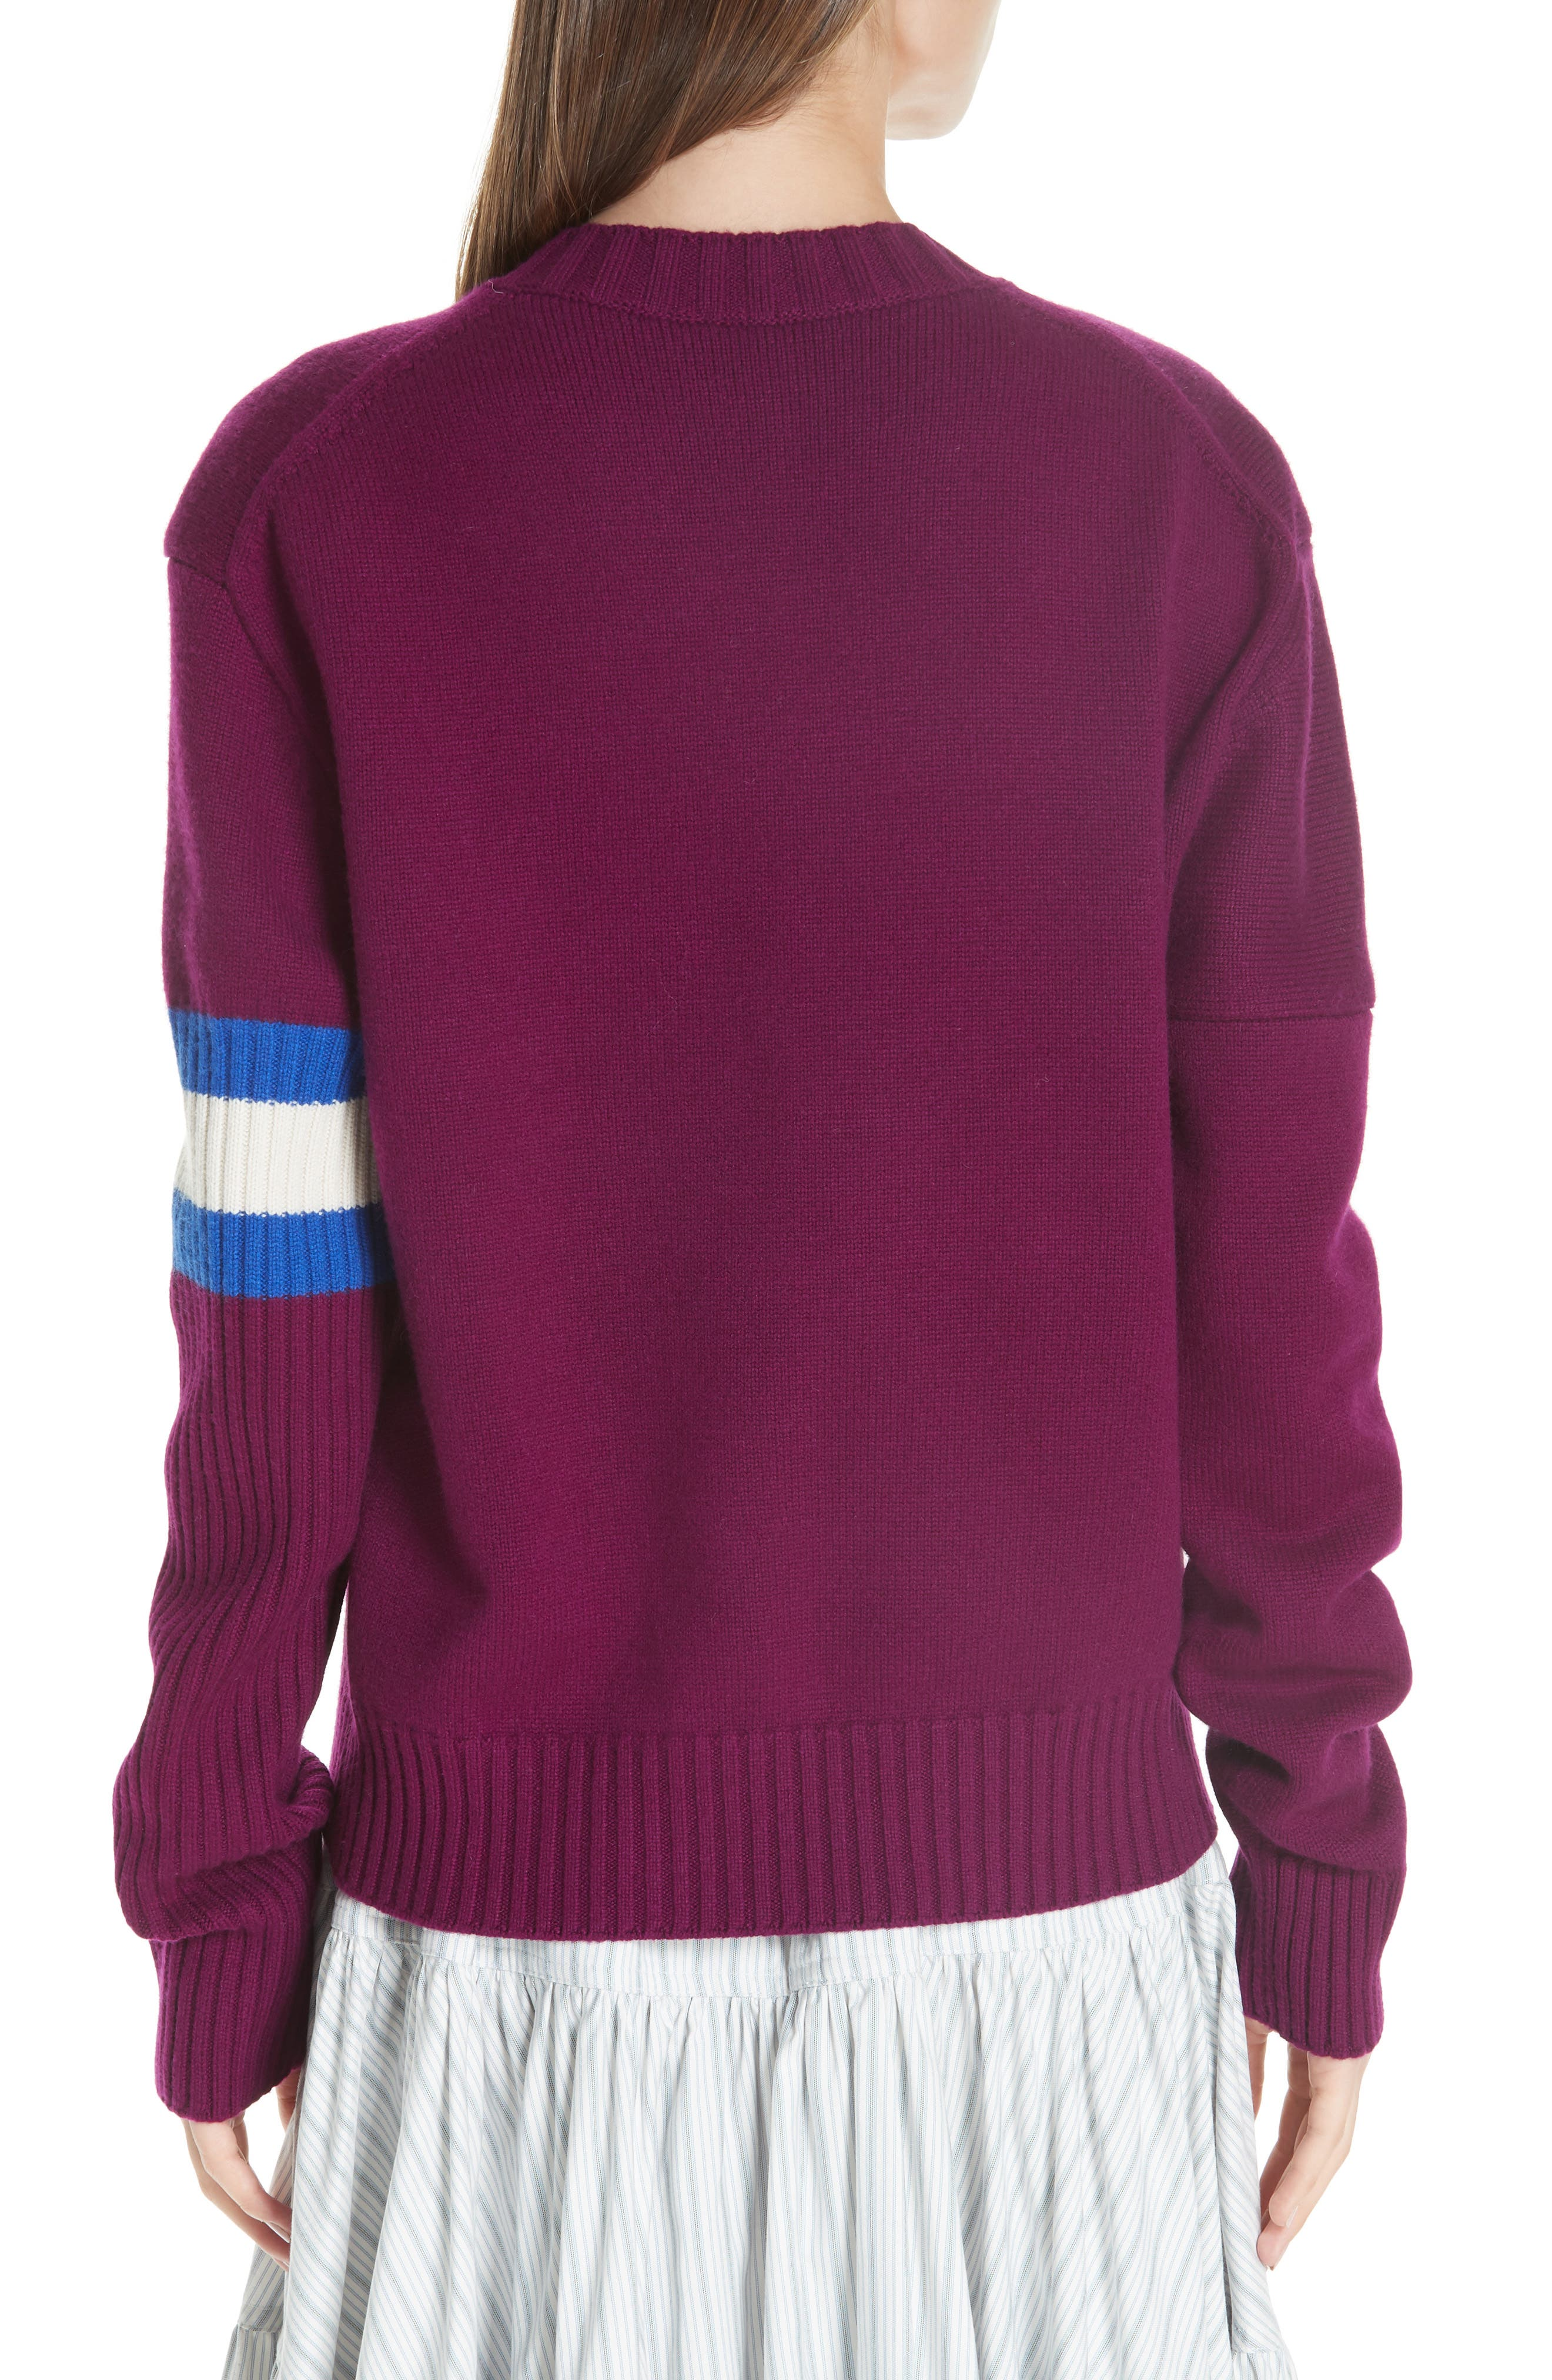 Cashmere Stripe Sleeve Sweater,                             Alternate thumbnail 2, color,                             DEEP PURPLE BRIGHT BLUE WHITE